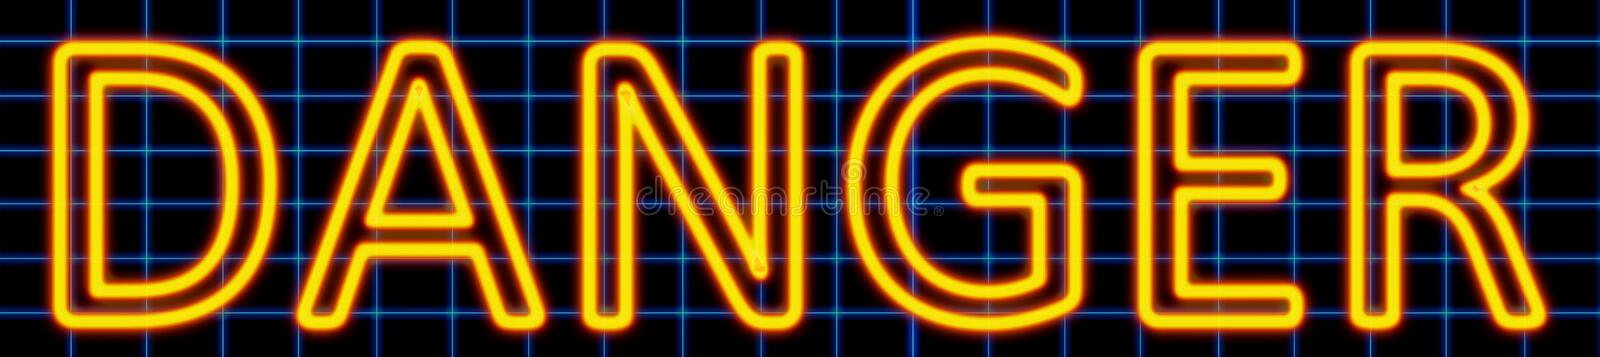 Danger neon sign. Abstract 3d rendered words danger yellow neon sign on blue wire background vector illustration